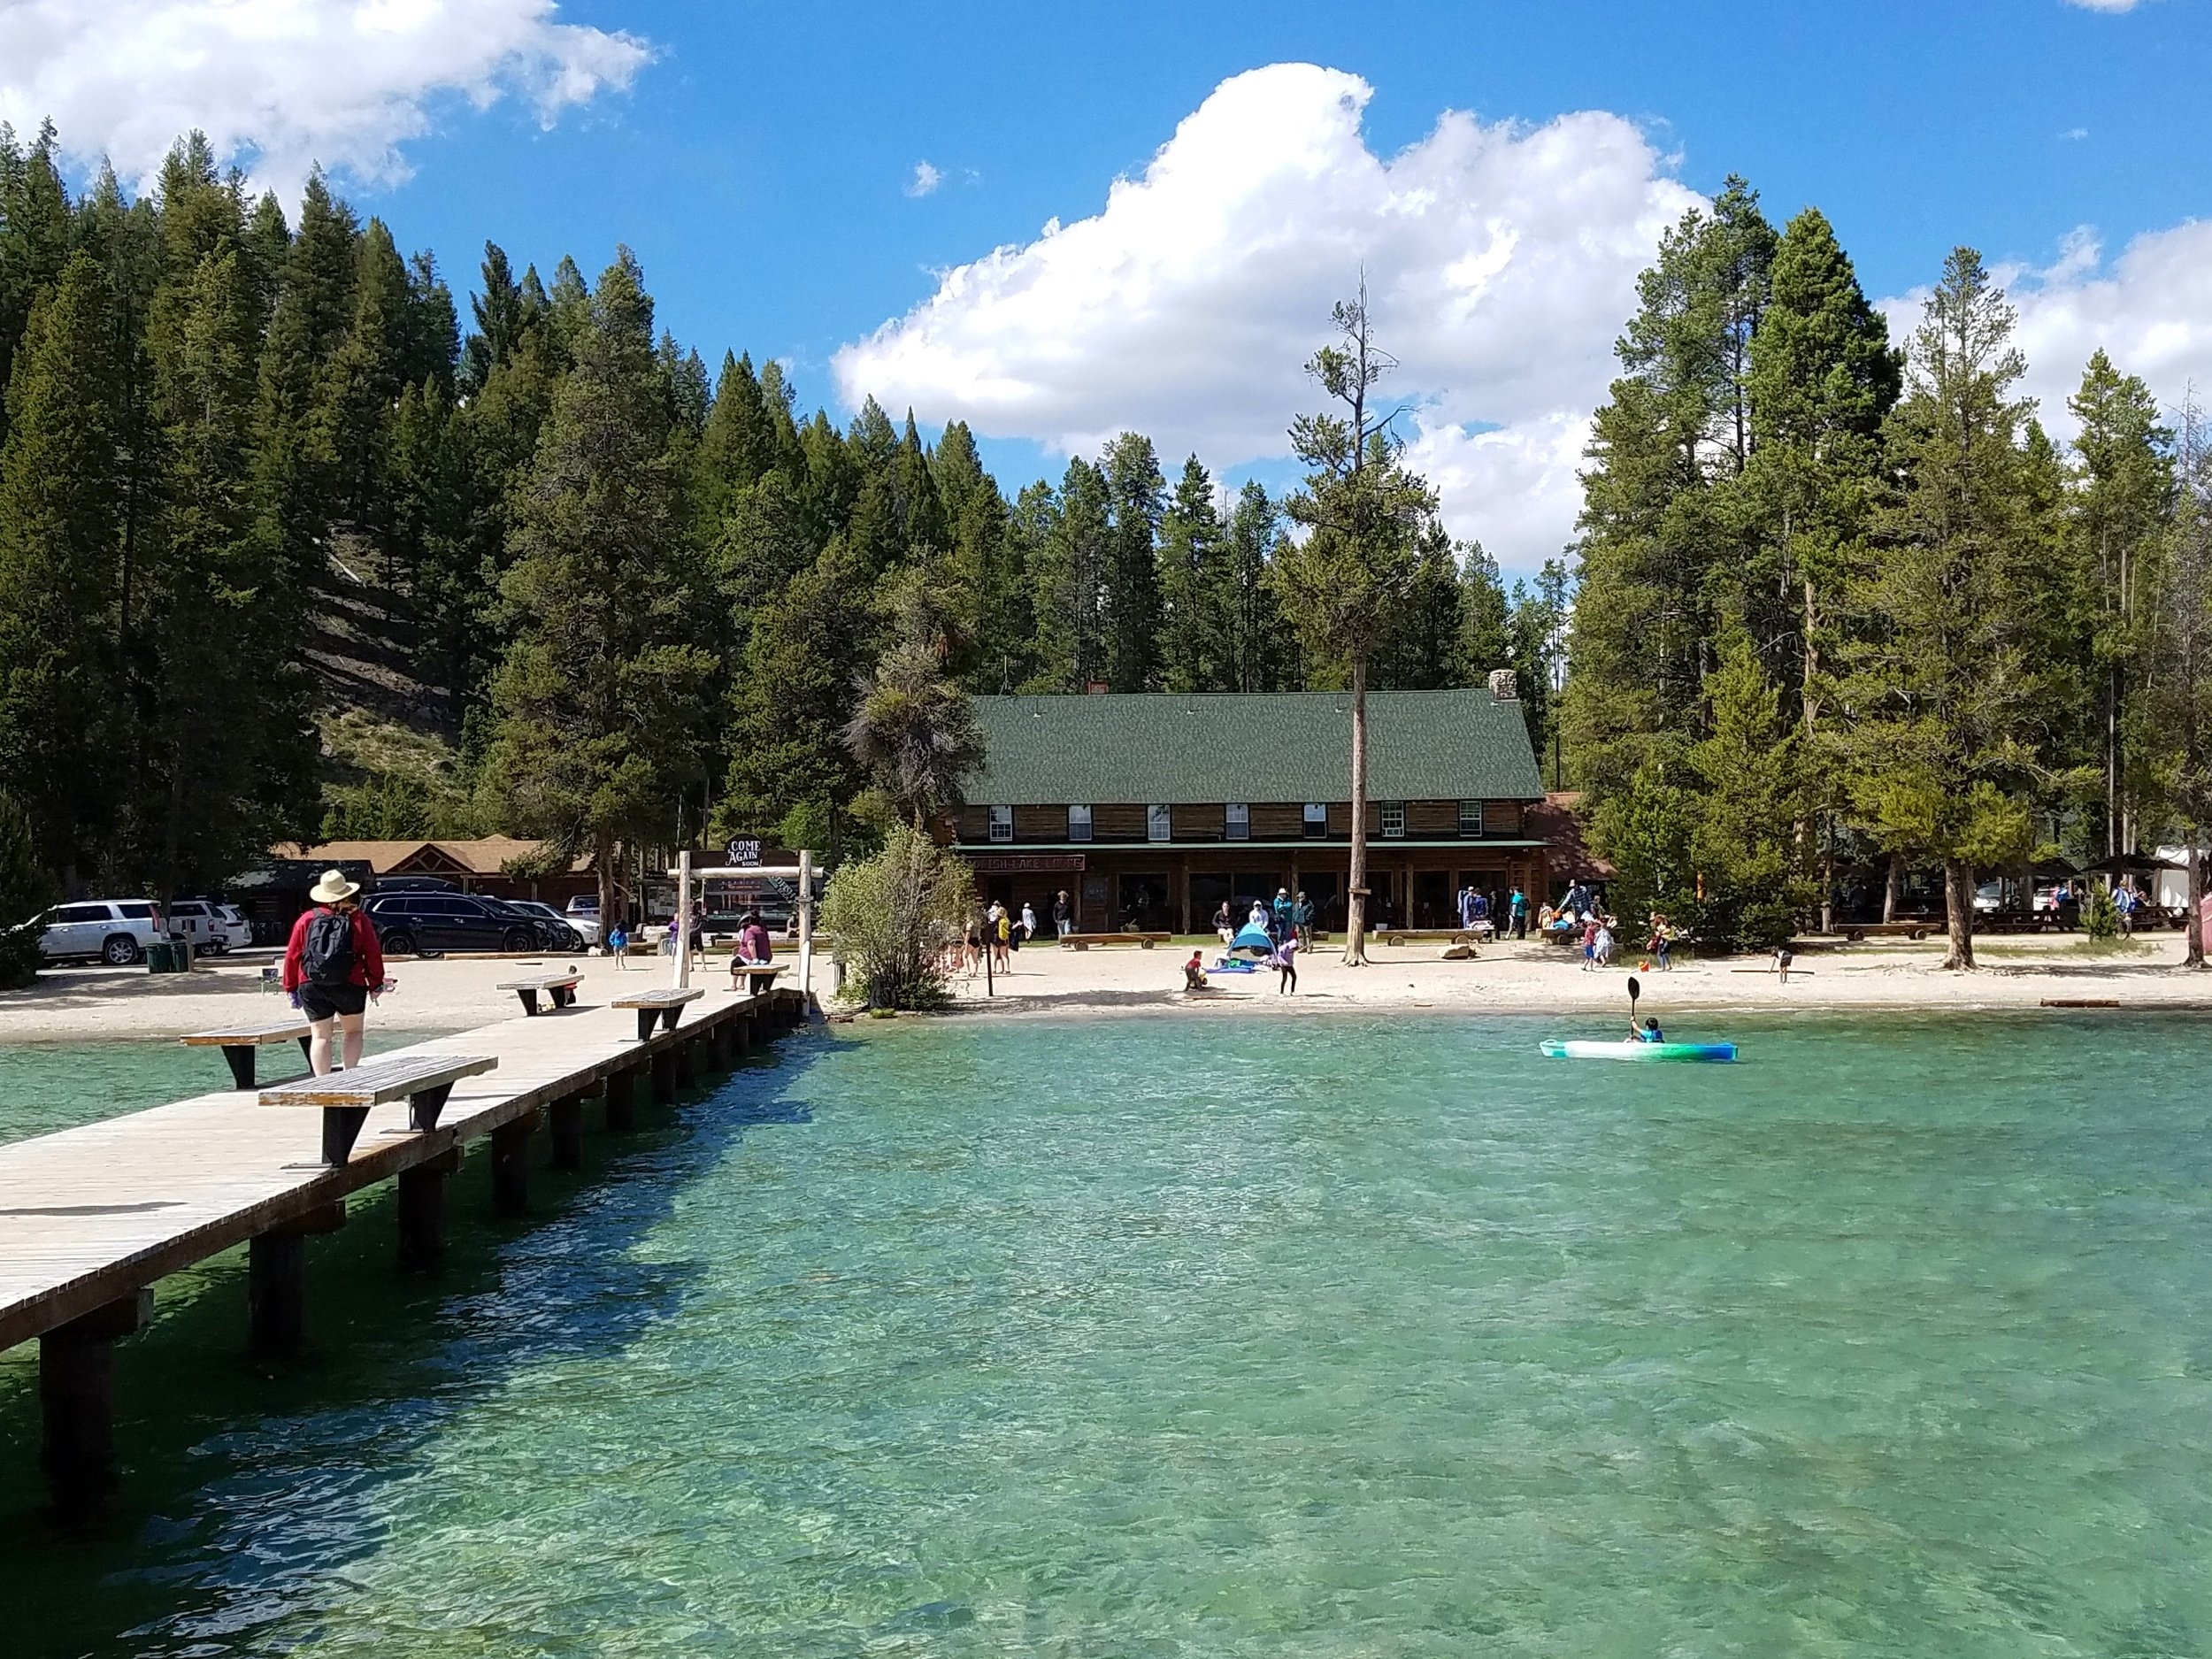 A view of Redfish Lake Lodge and beach from the marina docks